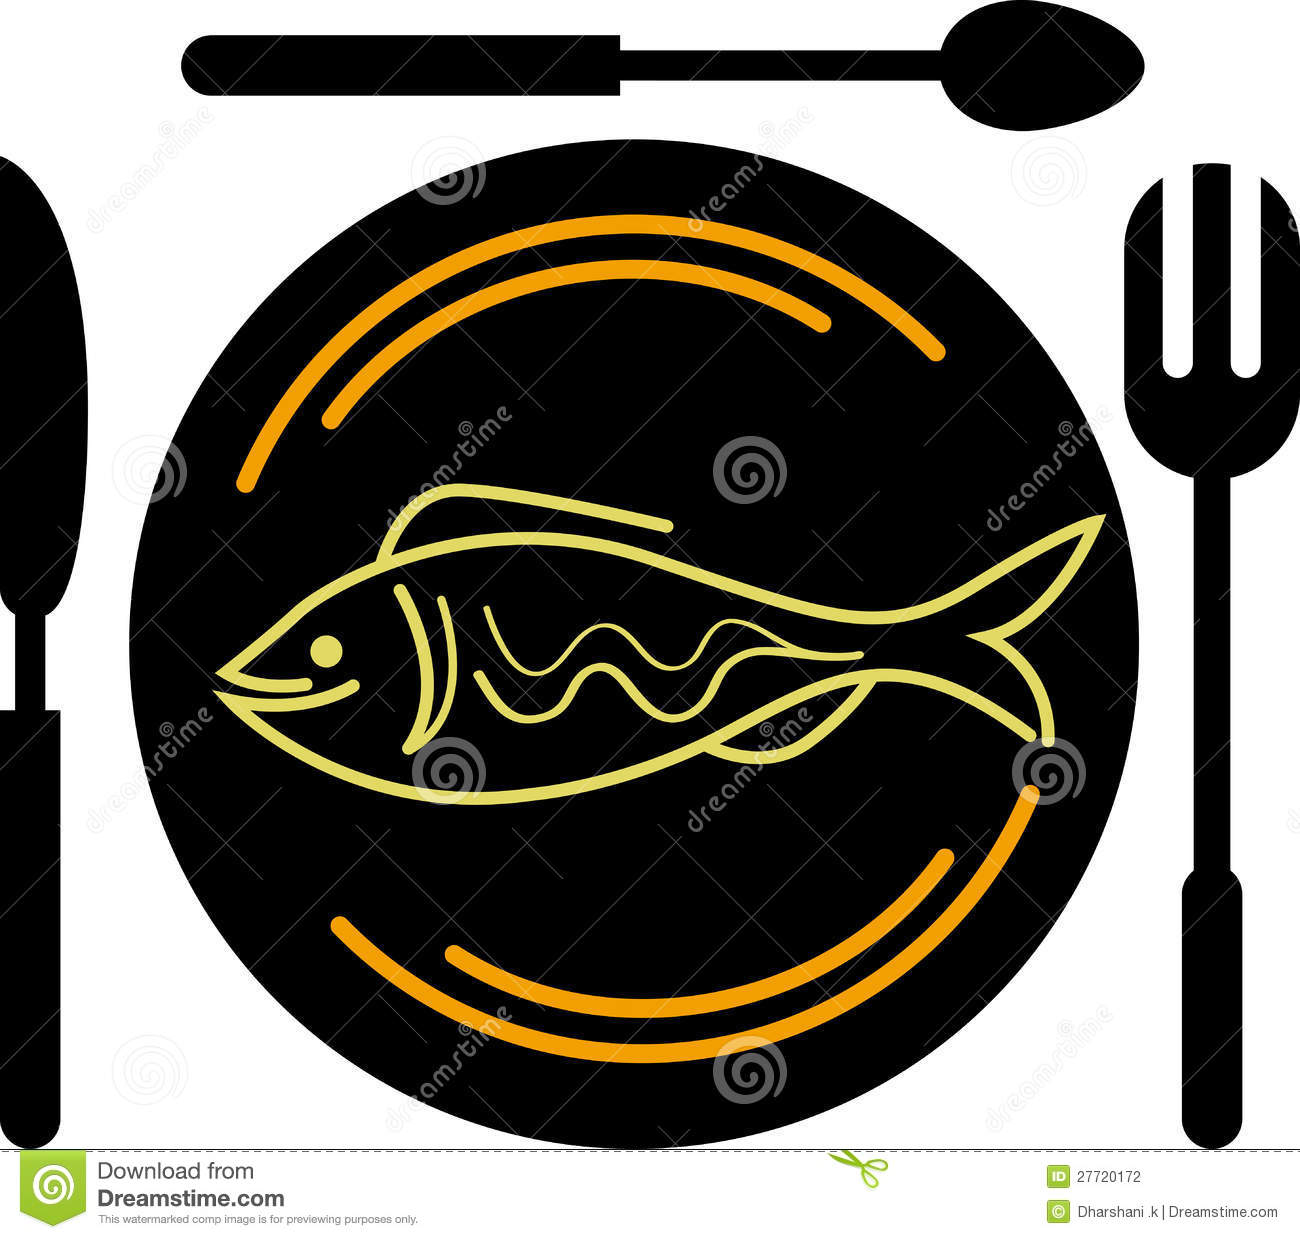 Illustration art of a eating fish logo with isolated background.